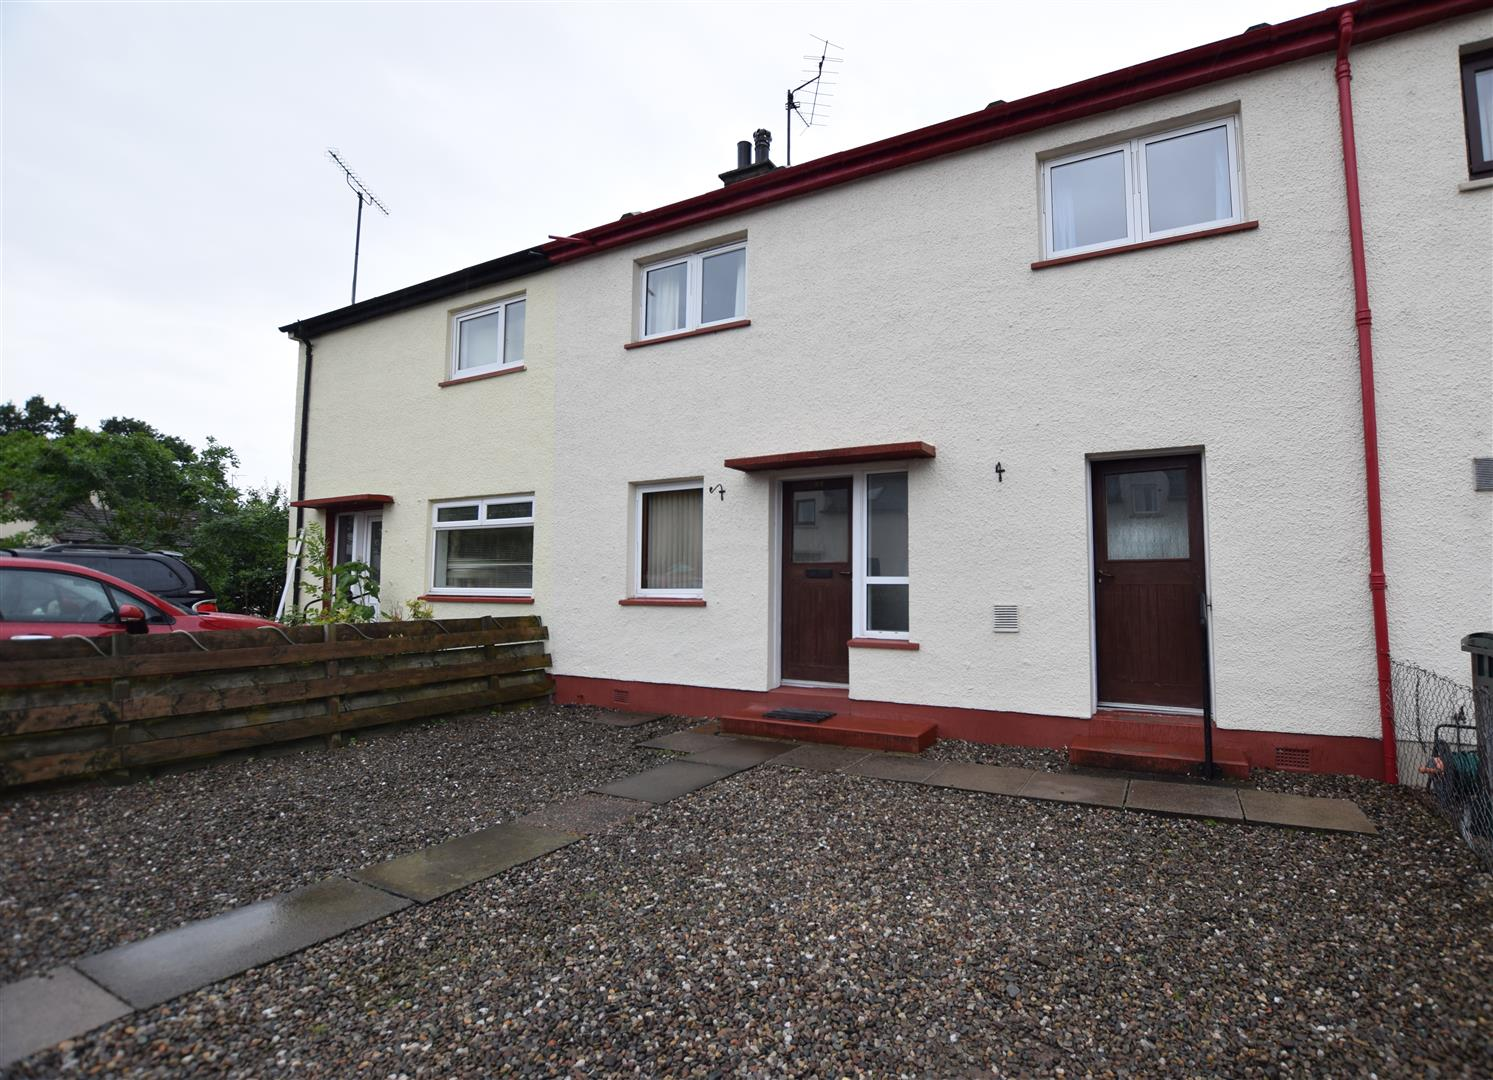 26, Broompark Crescent, Murthly, Murthly Perth, Perthshire, PH1 4HH, UK